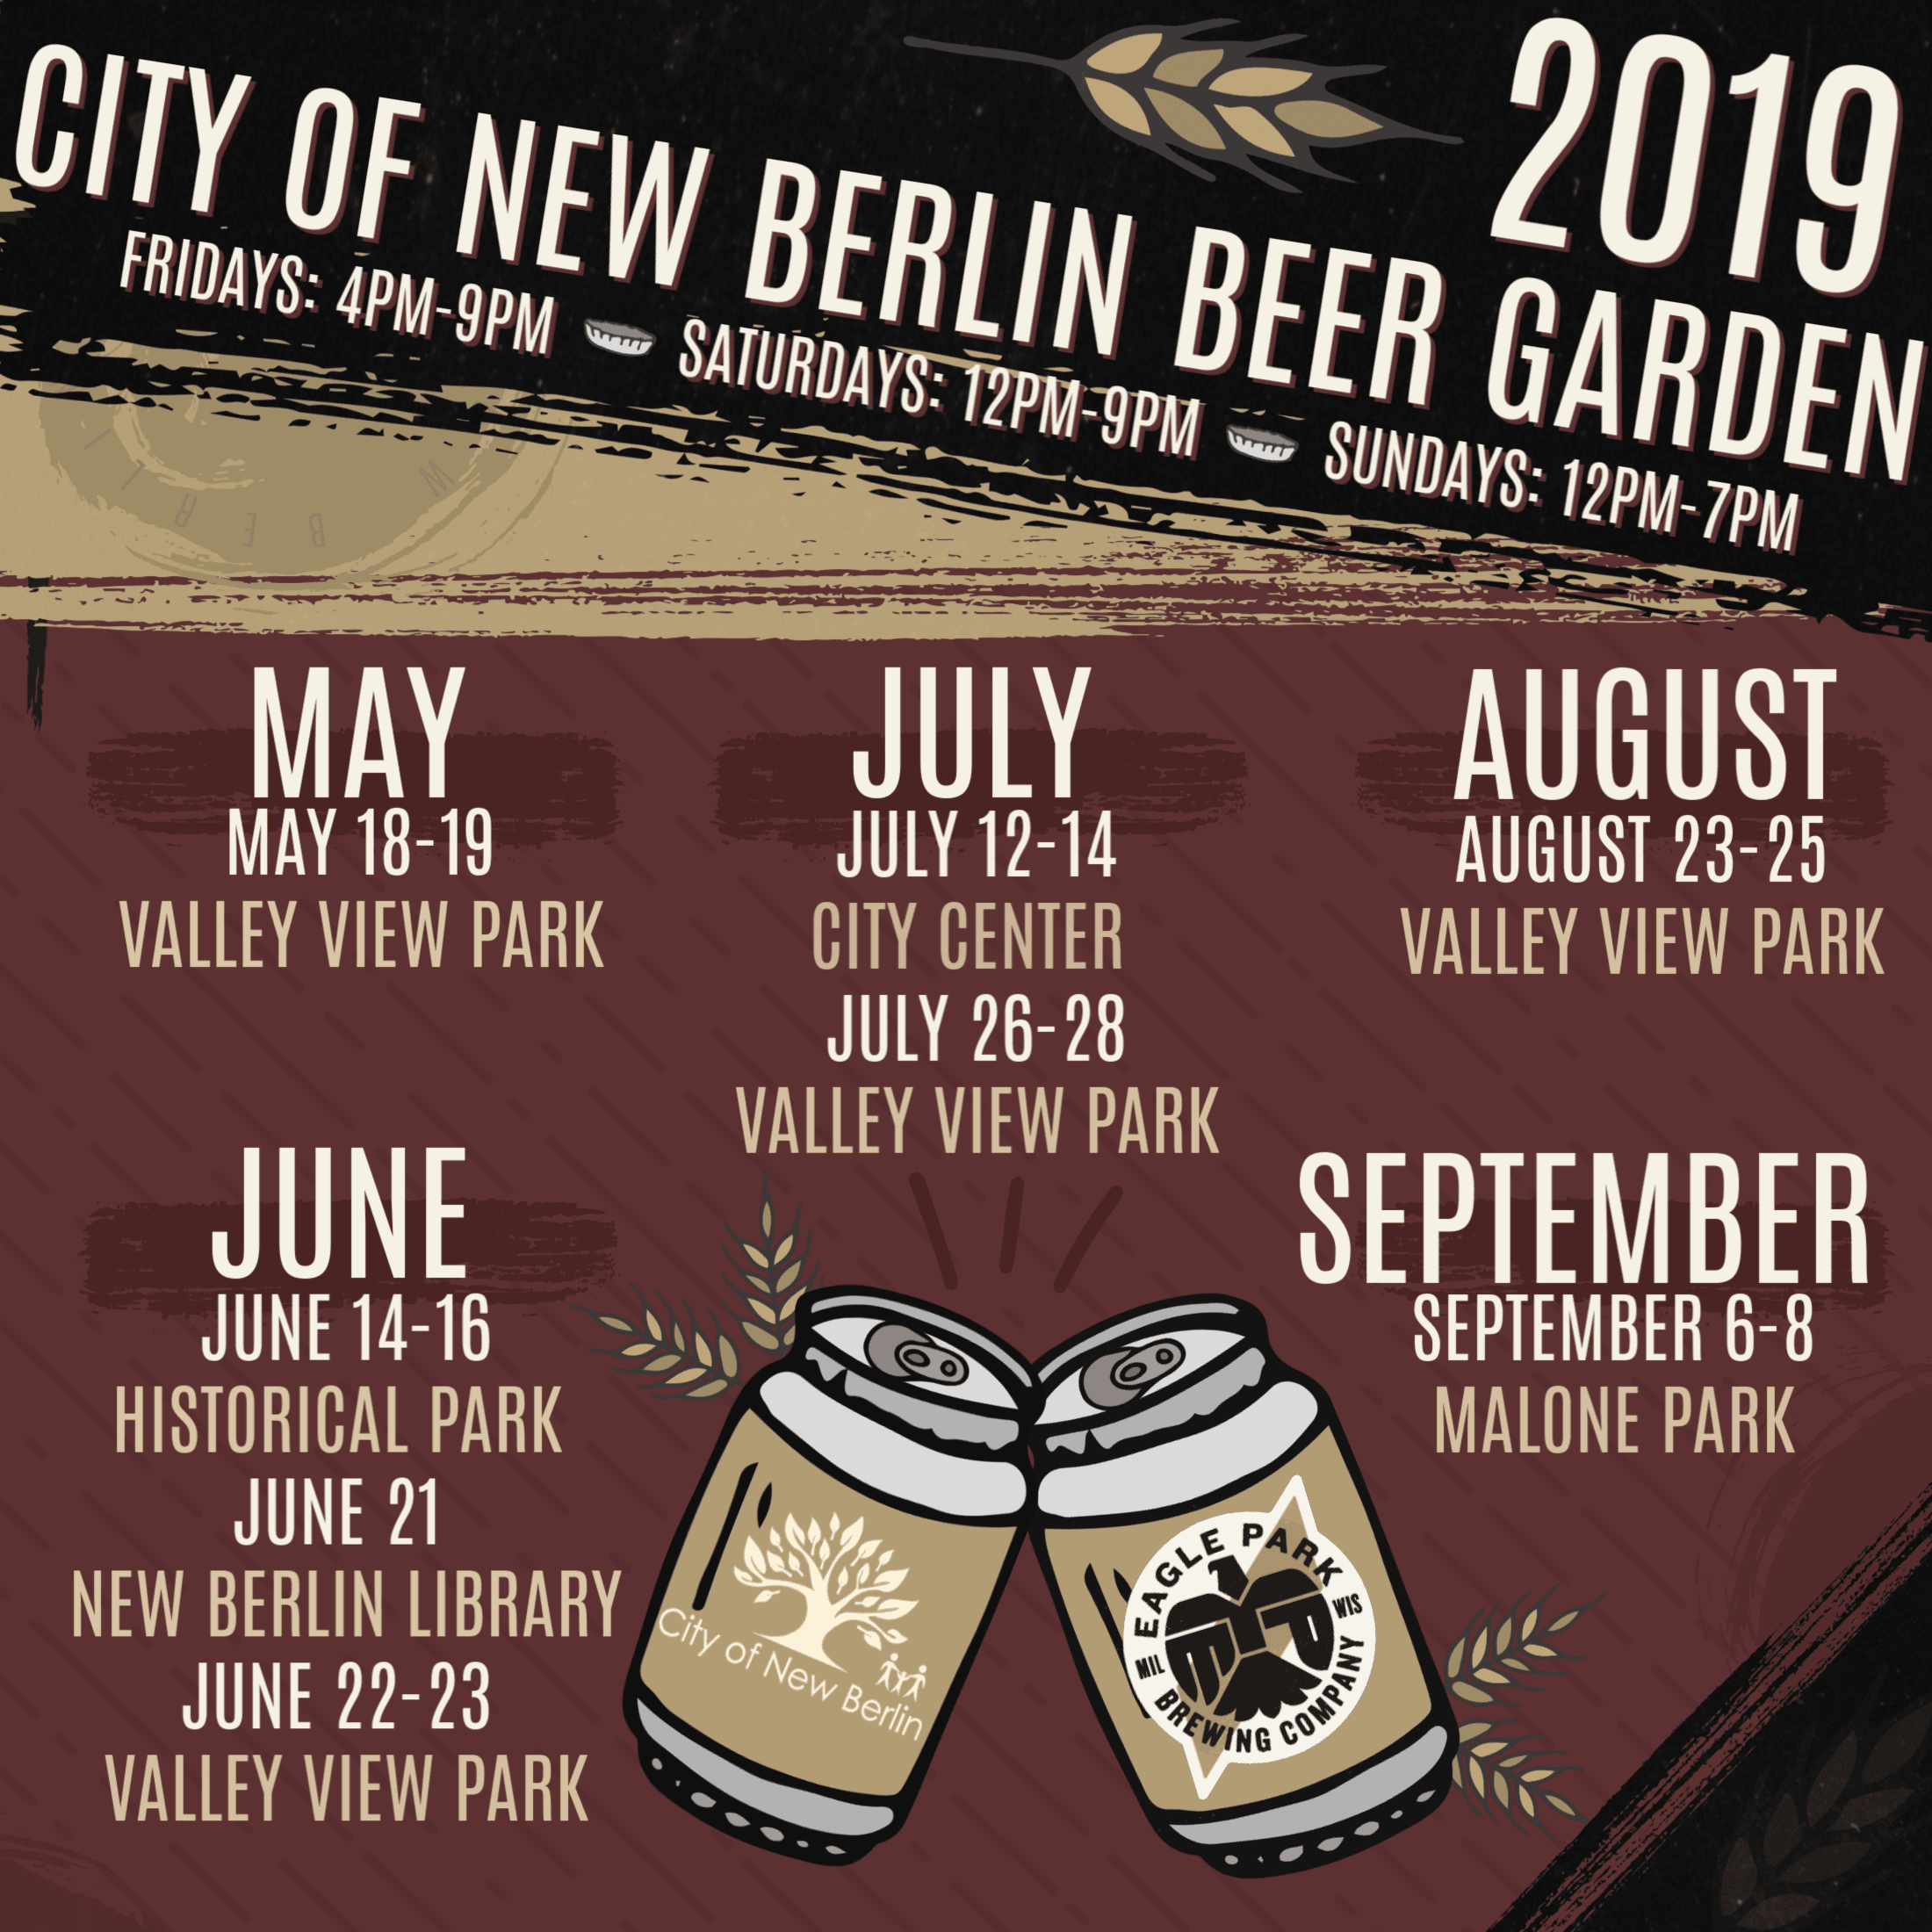 Beer Garden 2019 Square Size